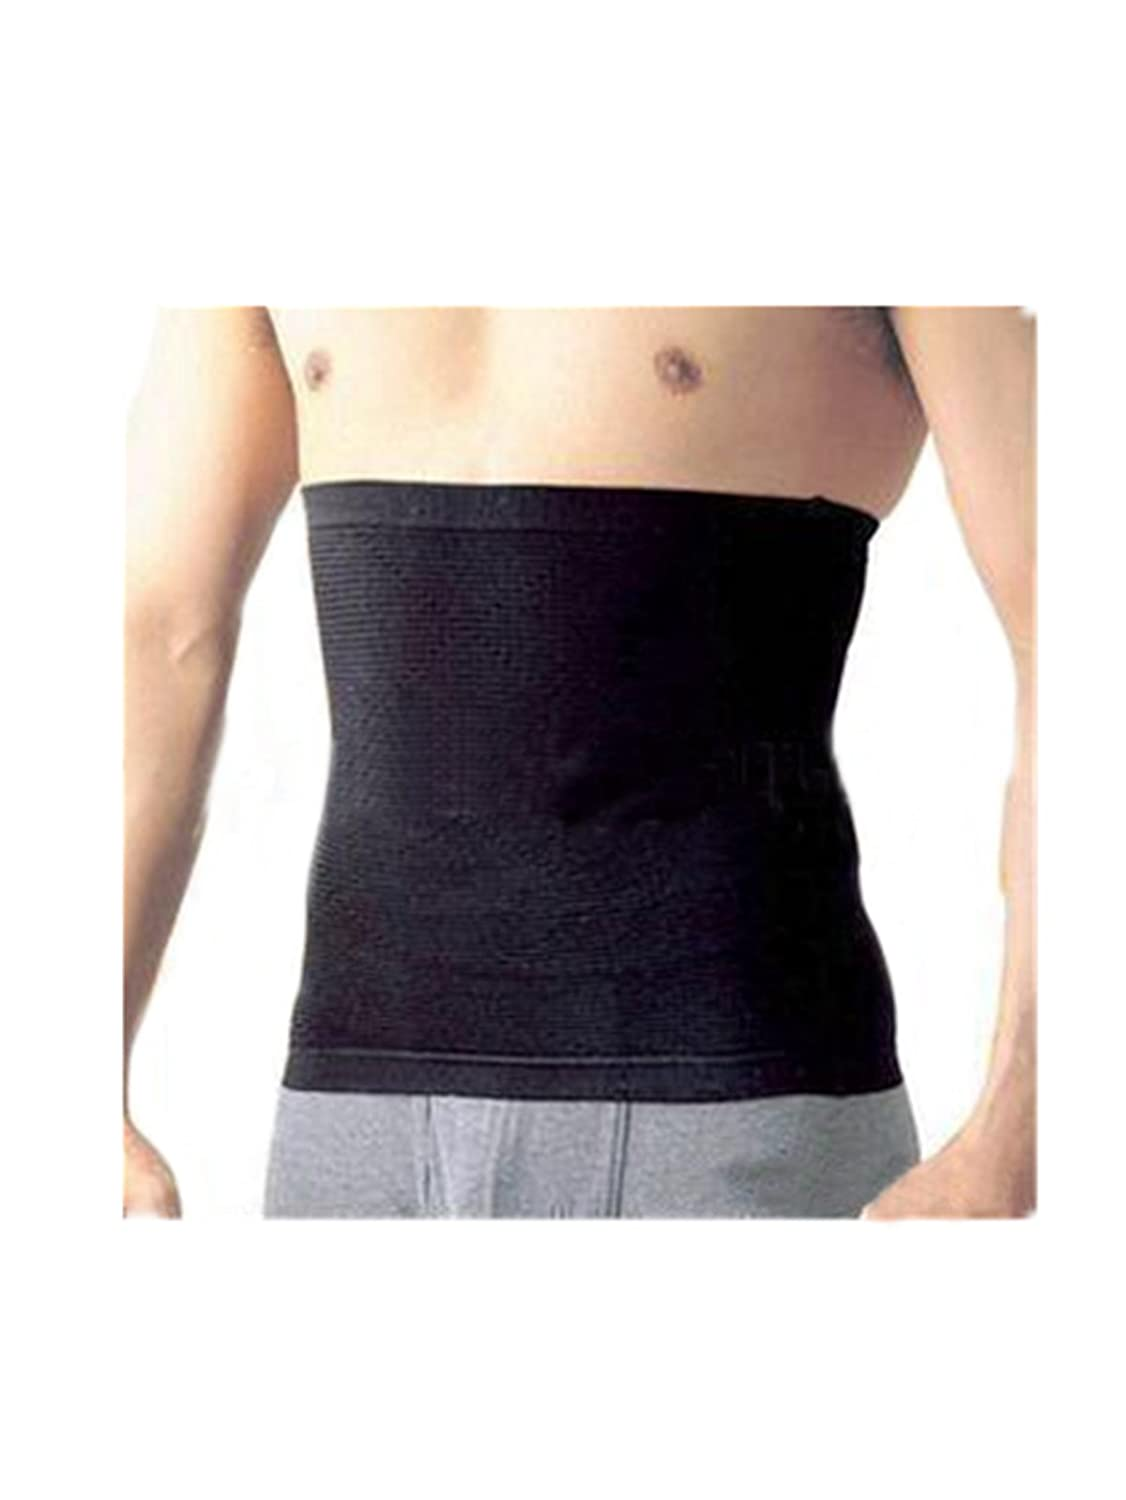 Leright Men's No Closure Waist Cincher Firm Compression Waist Trainer Shapewear